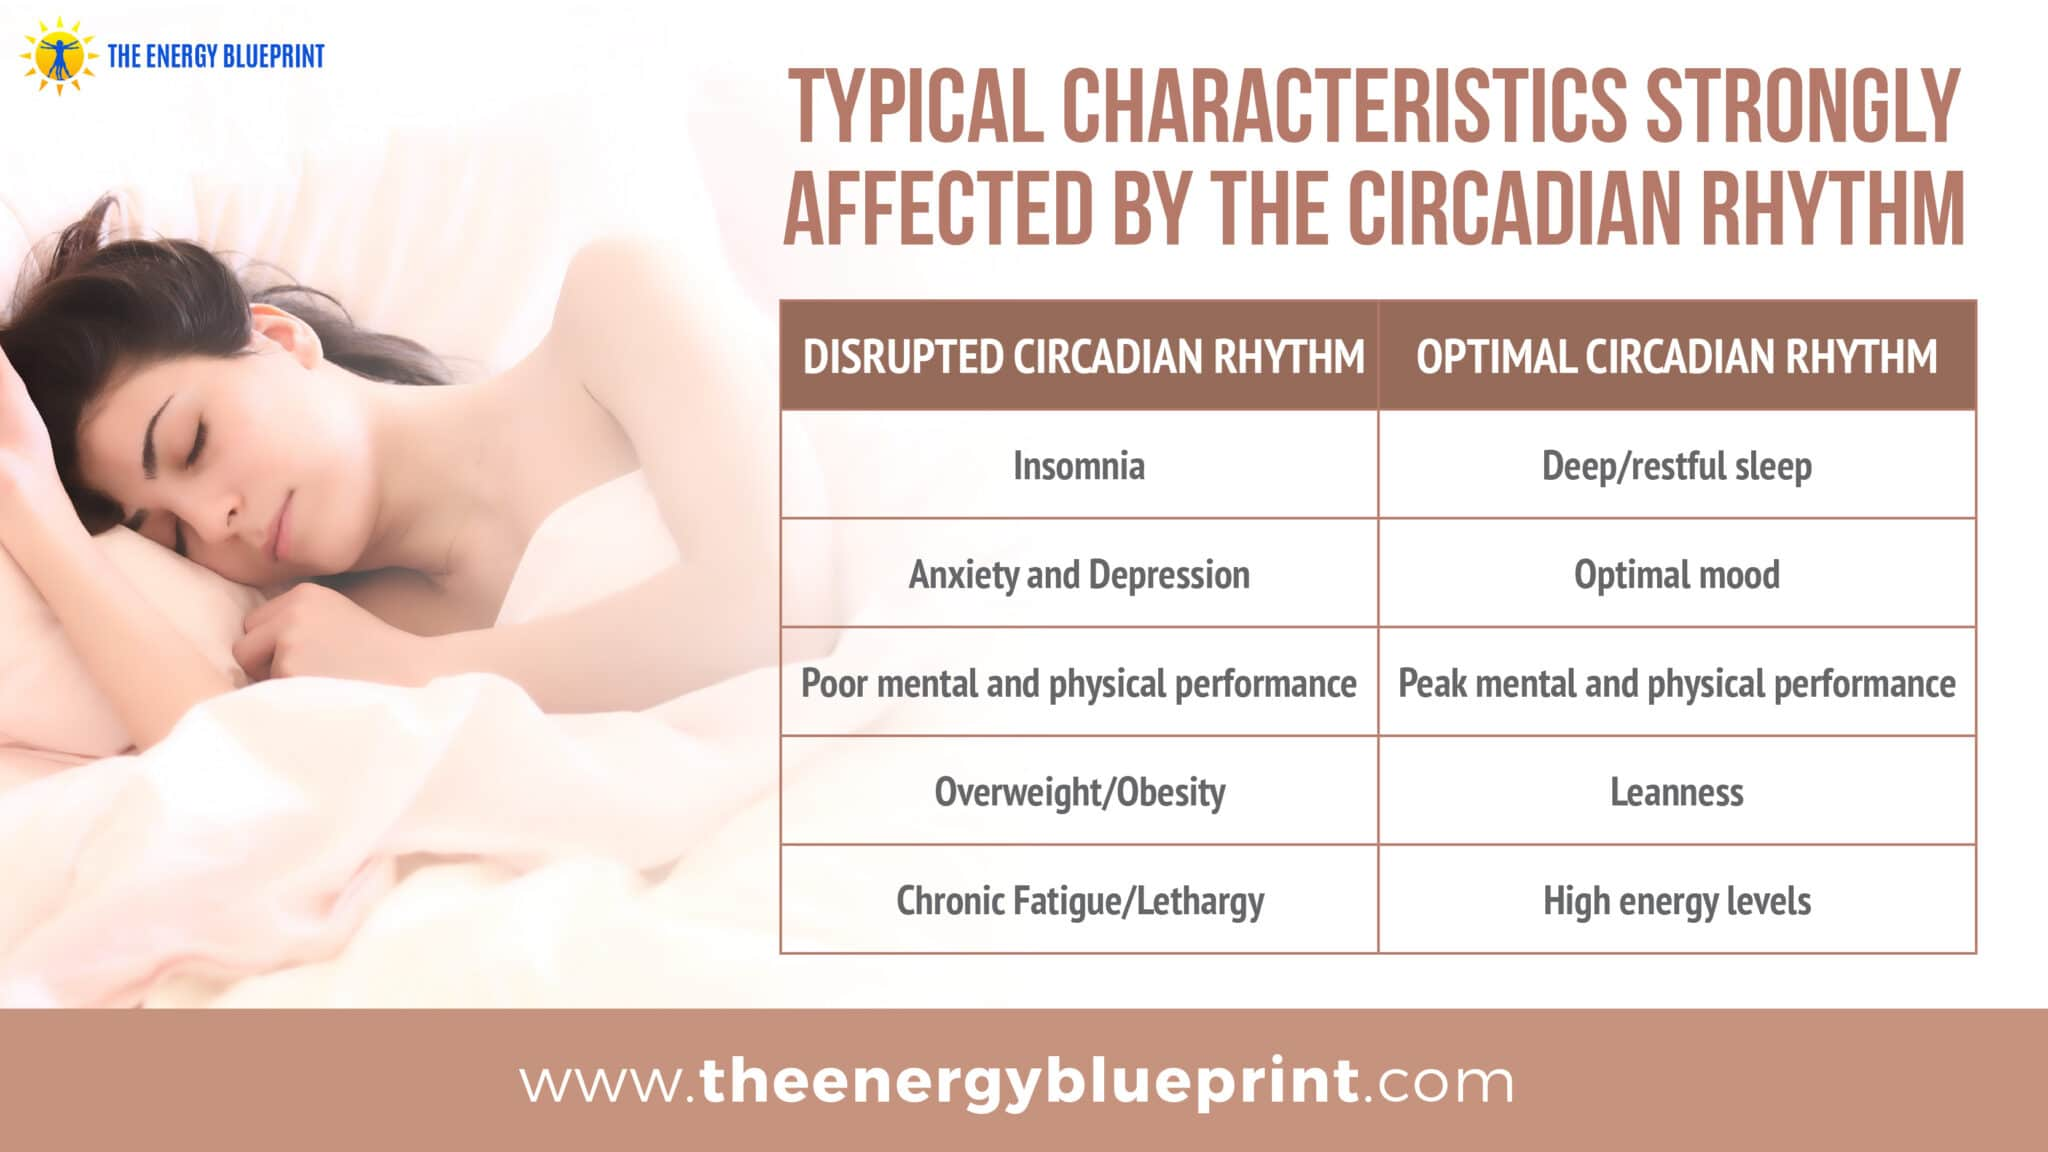 typical characteristics strongly affected by the circadian rhythm │ why am I so tired, theenergyblueprint.com